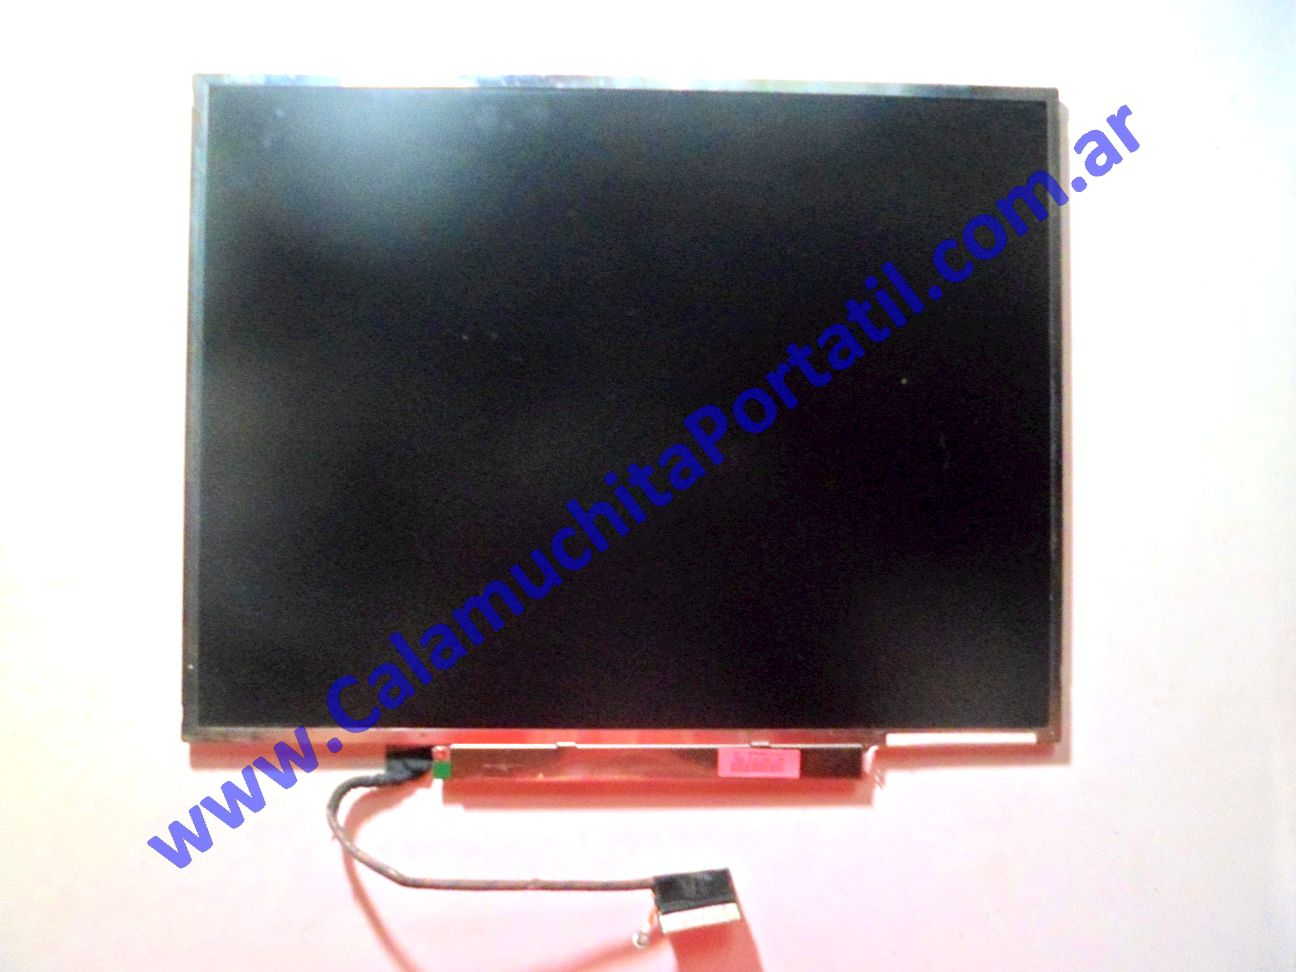 0043DIA Display Dell Latitude D600